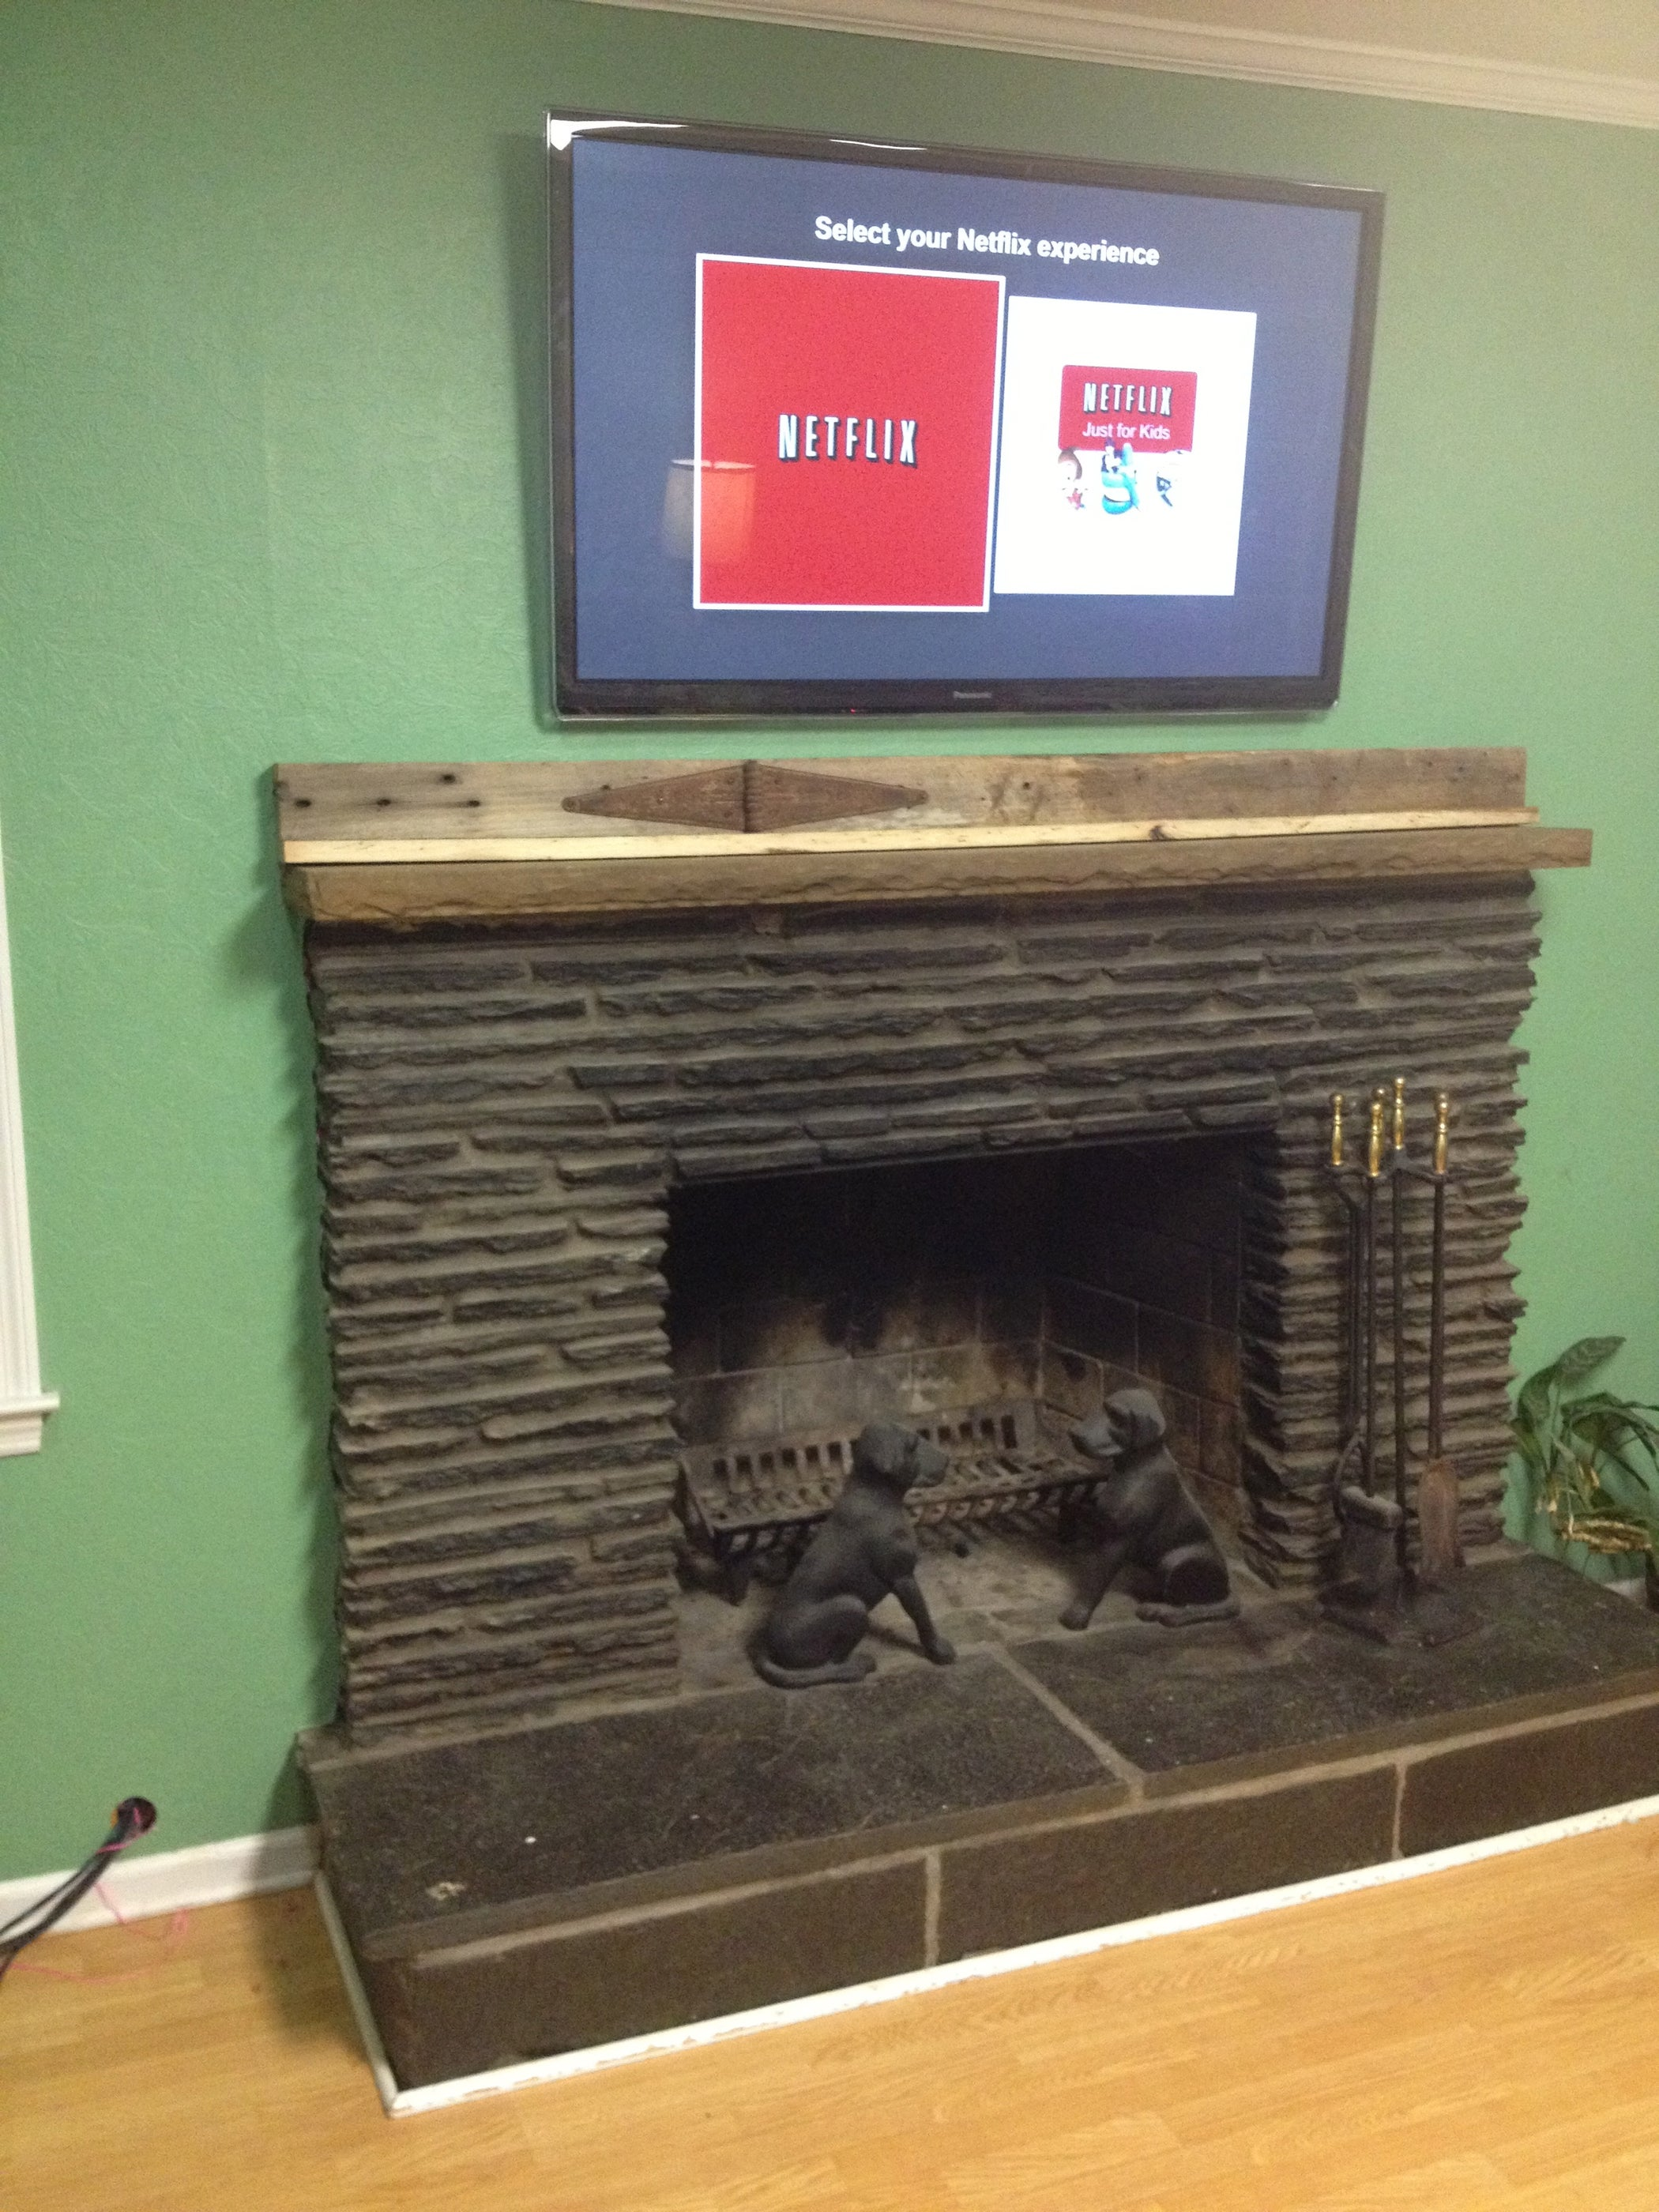 Miraculous Run Tv Cables Above A Fireplace 6 Steps With Pictures Wiring Digital Resources Anistprontobusorg